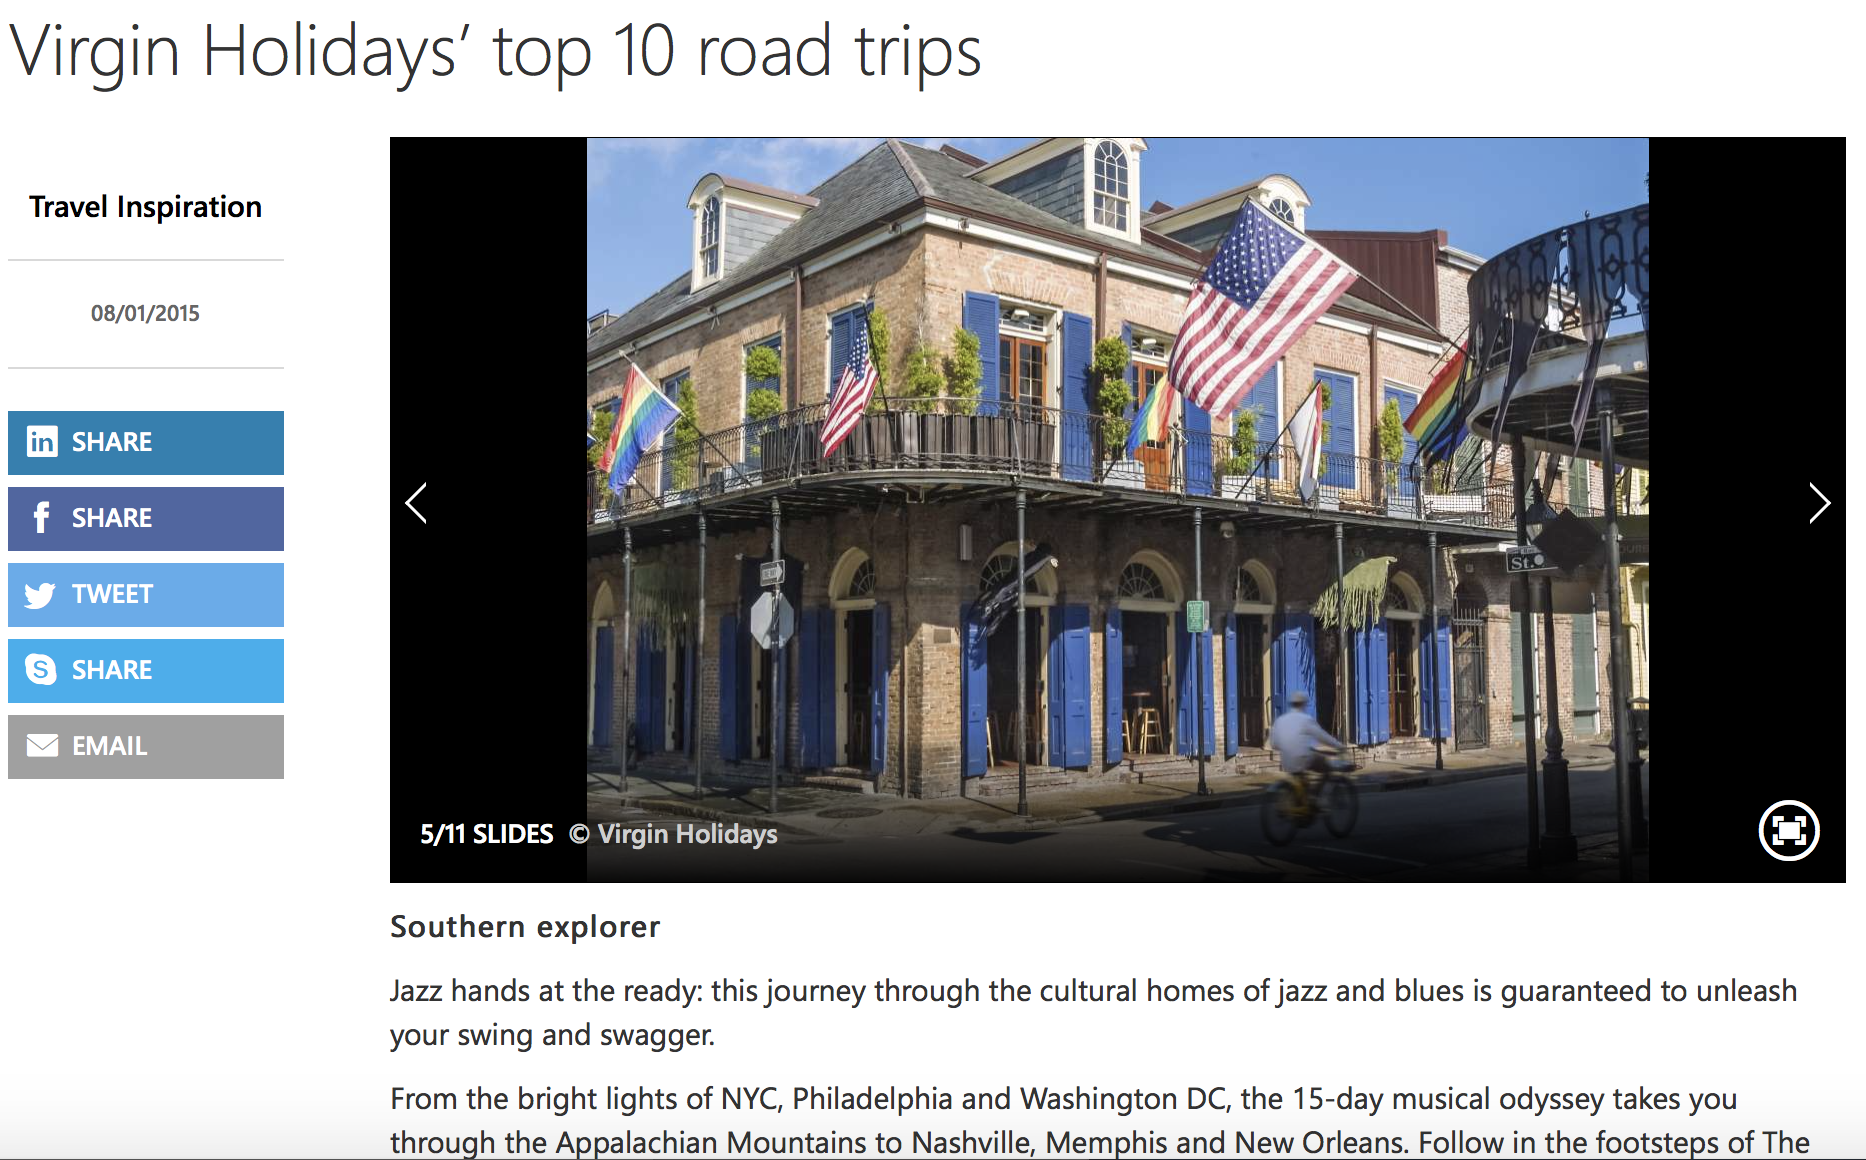 MSN Top 10 Road Trips